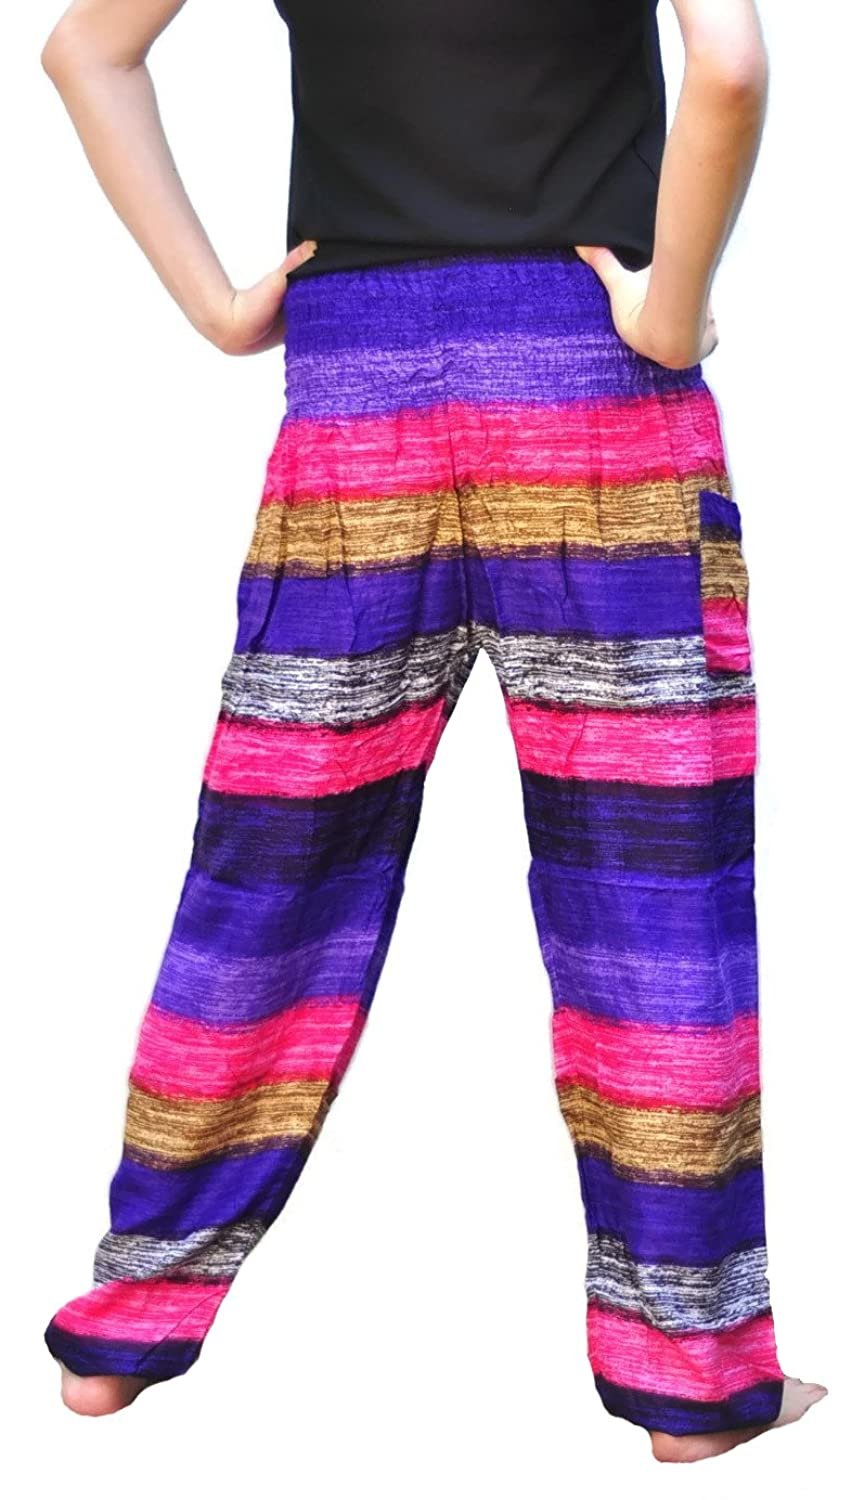 Siam Trendy Women's Thai Rayon Pants One Size Pink Violet